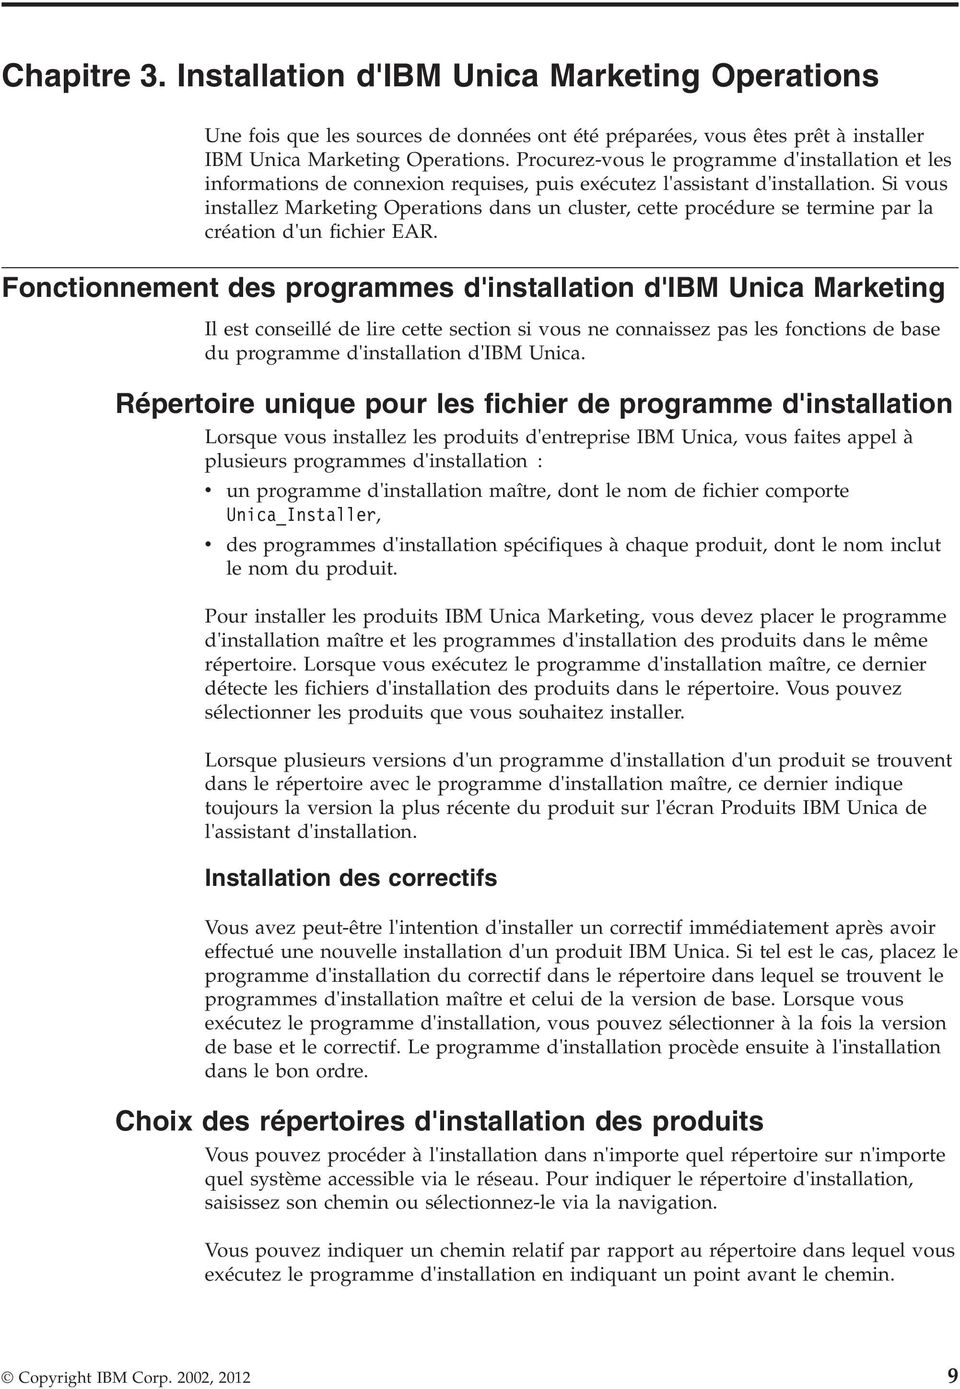 Si ous installez Marketing Operations dans un cluster, cette procédure se termine par la création d'un fichier EAR.